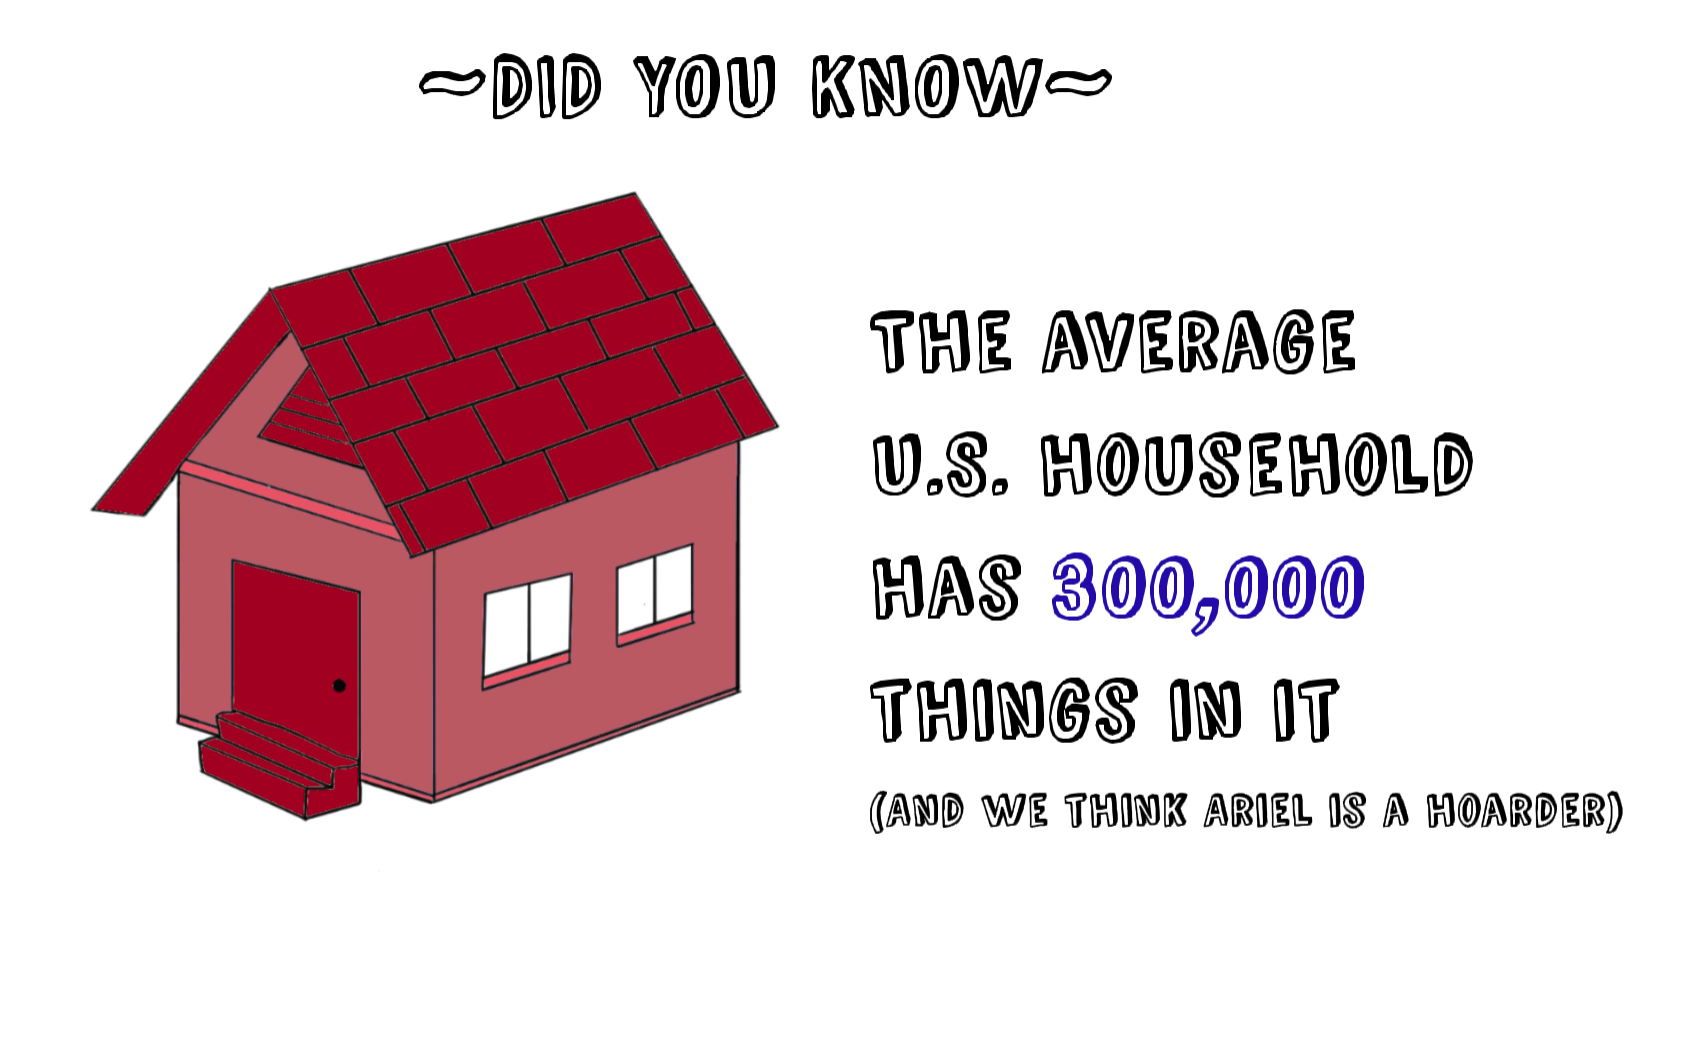 Did You Know... Household?